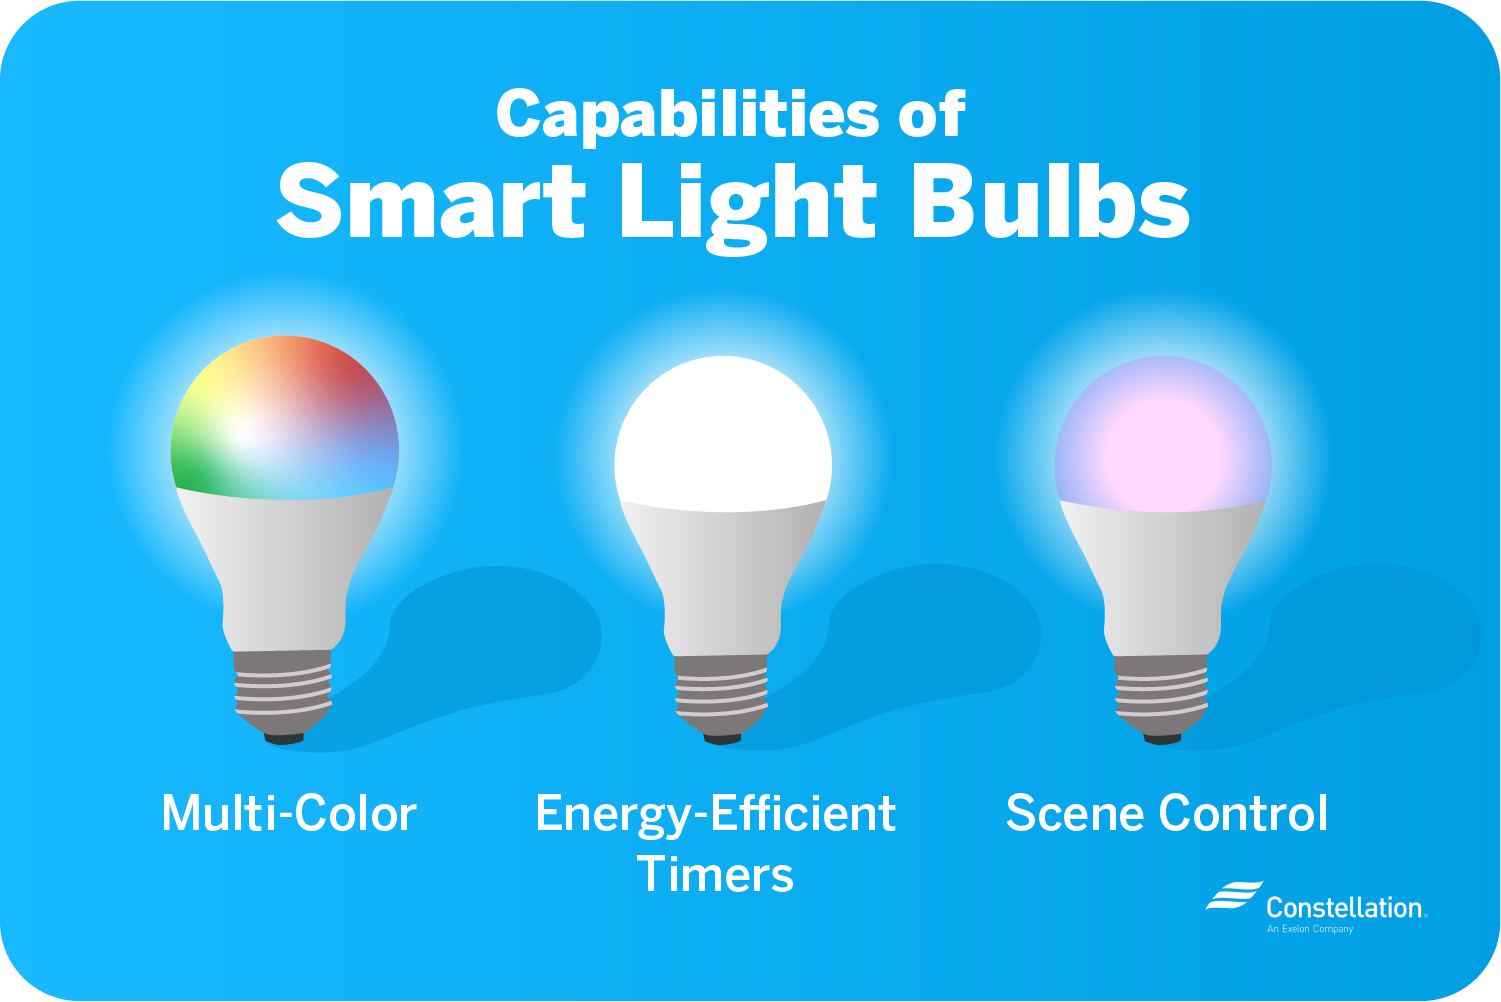 Smart light bulbs have scene control, multi-color, and timer capabilities